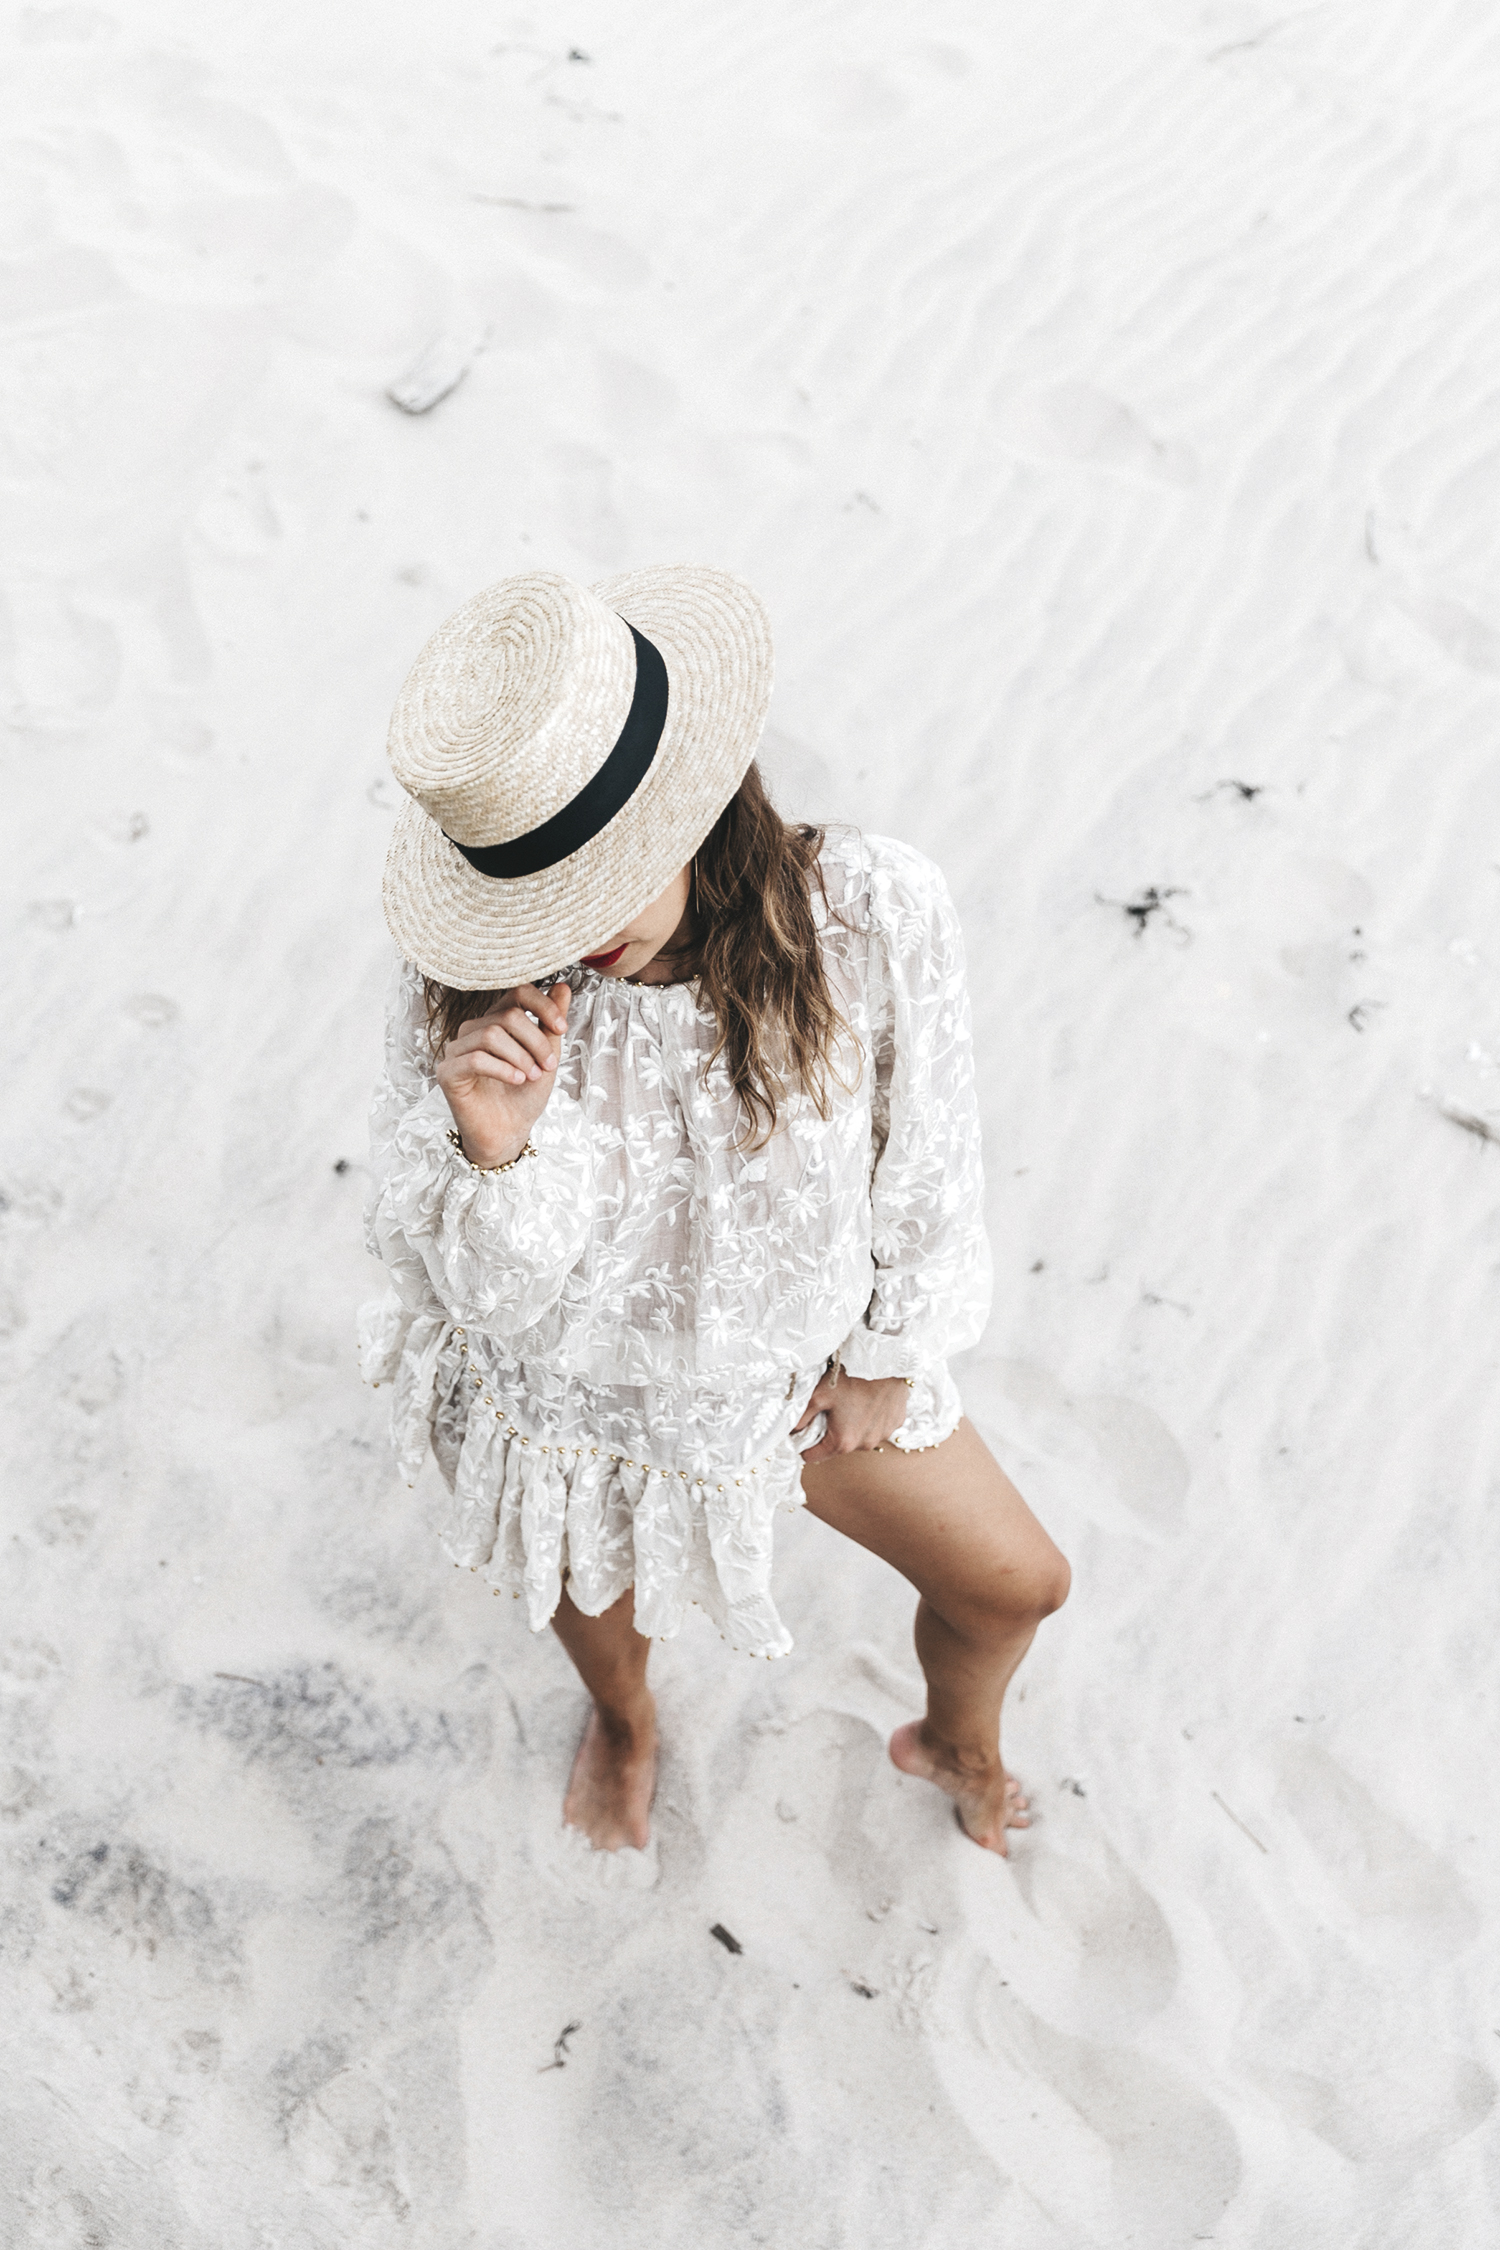 Revolve_in_The_Hamptons-Zimmermann-Embroidered_Dress-WHite_Dress-Chloe_Fay_Bag-Chloe_Wedges-Outfit-68